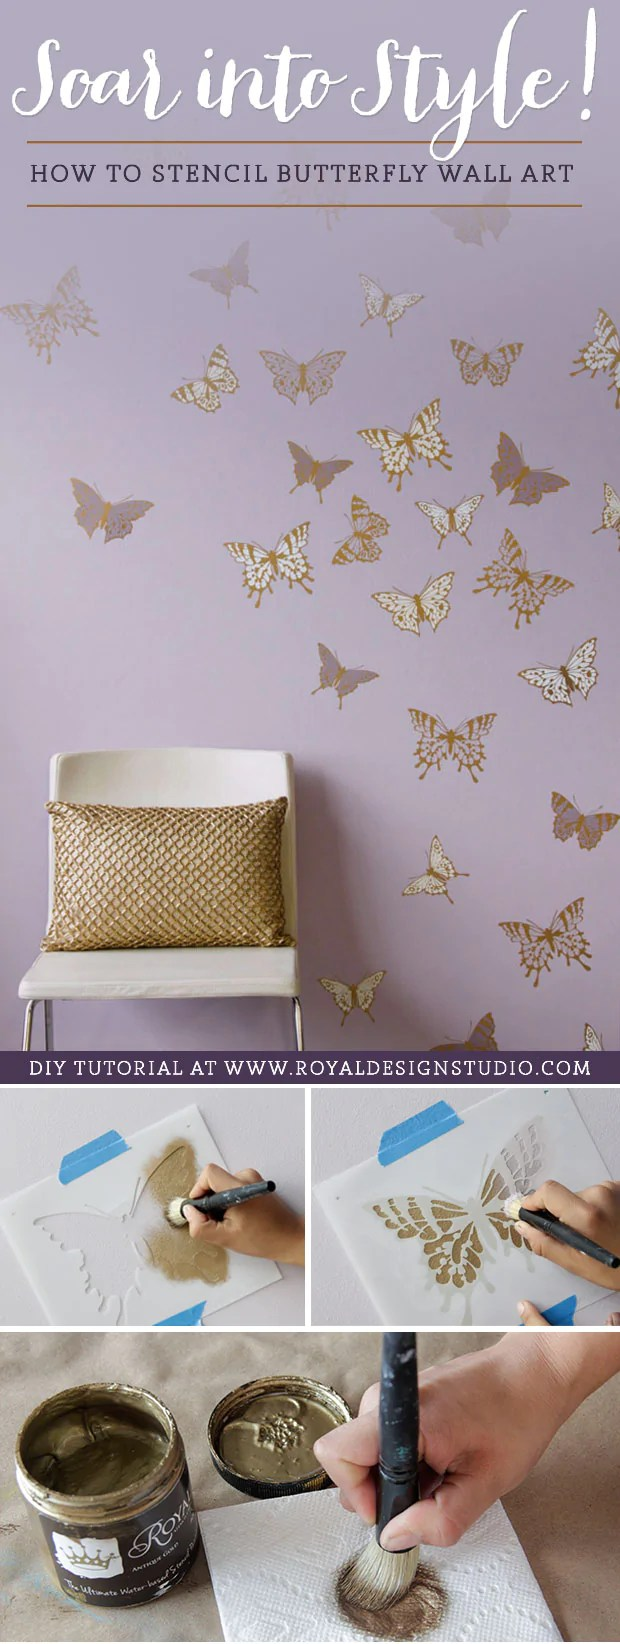 How To Stencil Tutorial Butterfly Wall Art For Cute Girls Room Decor Royal Design Studio Stencils